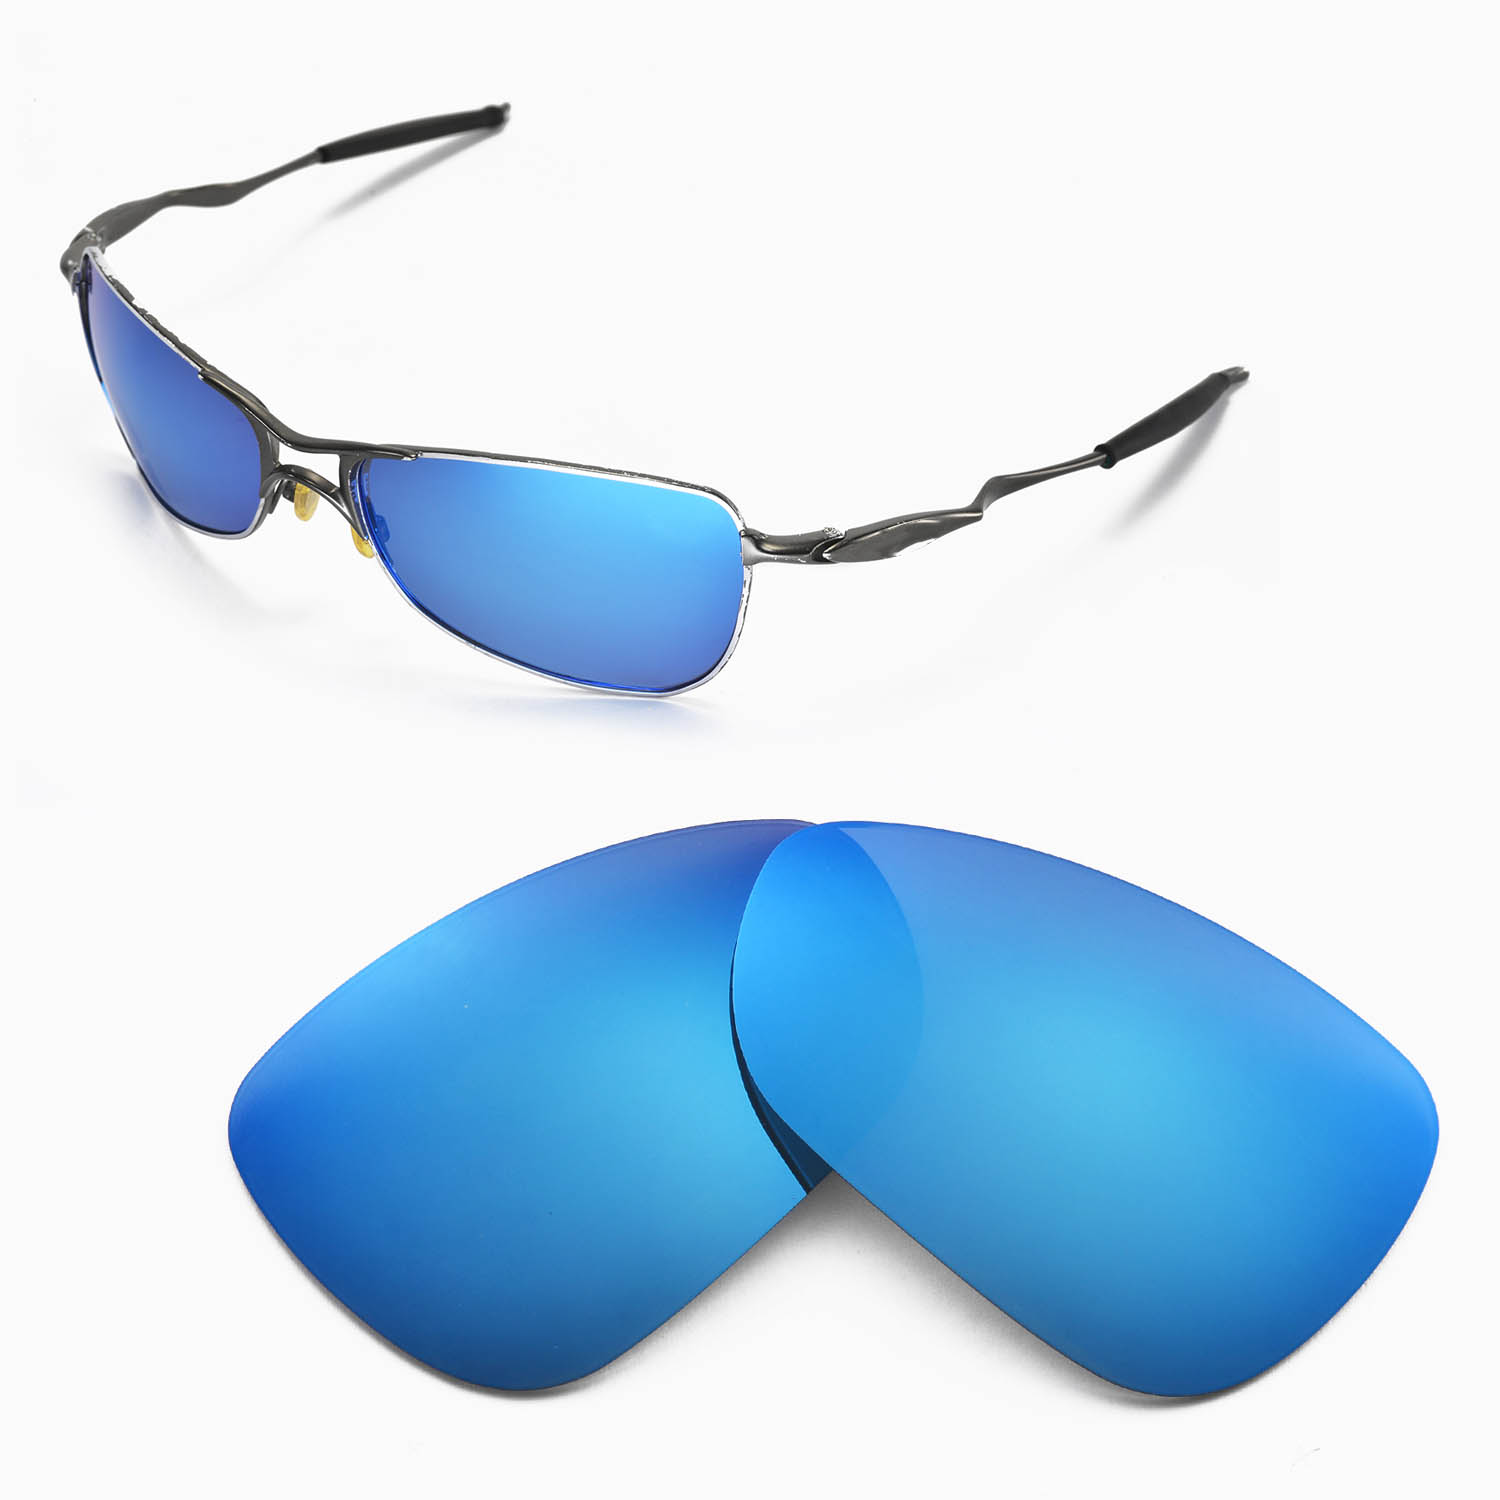 Blue Sunglasses Lenses  new wl polarized ice blue replacement lenses for oakley crosshair